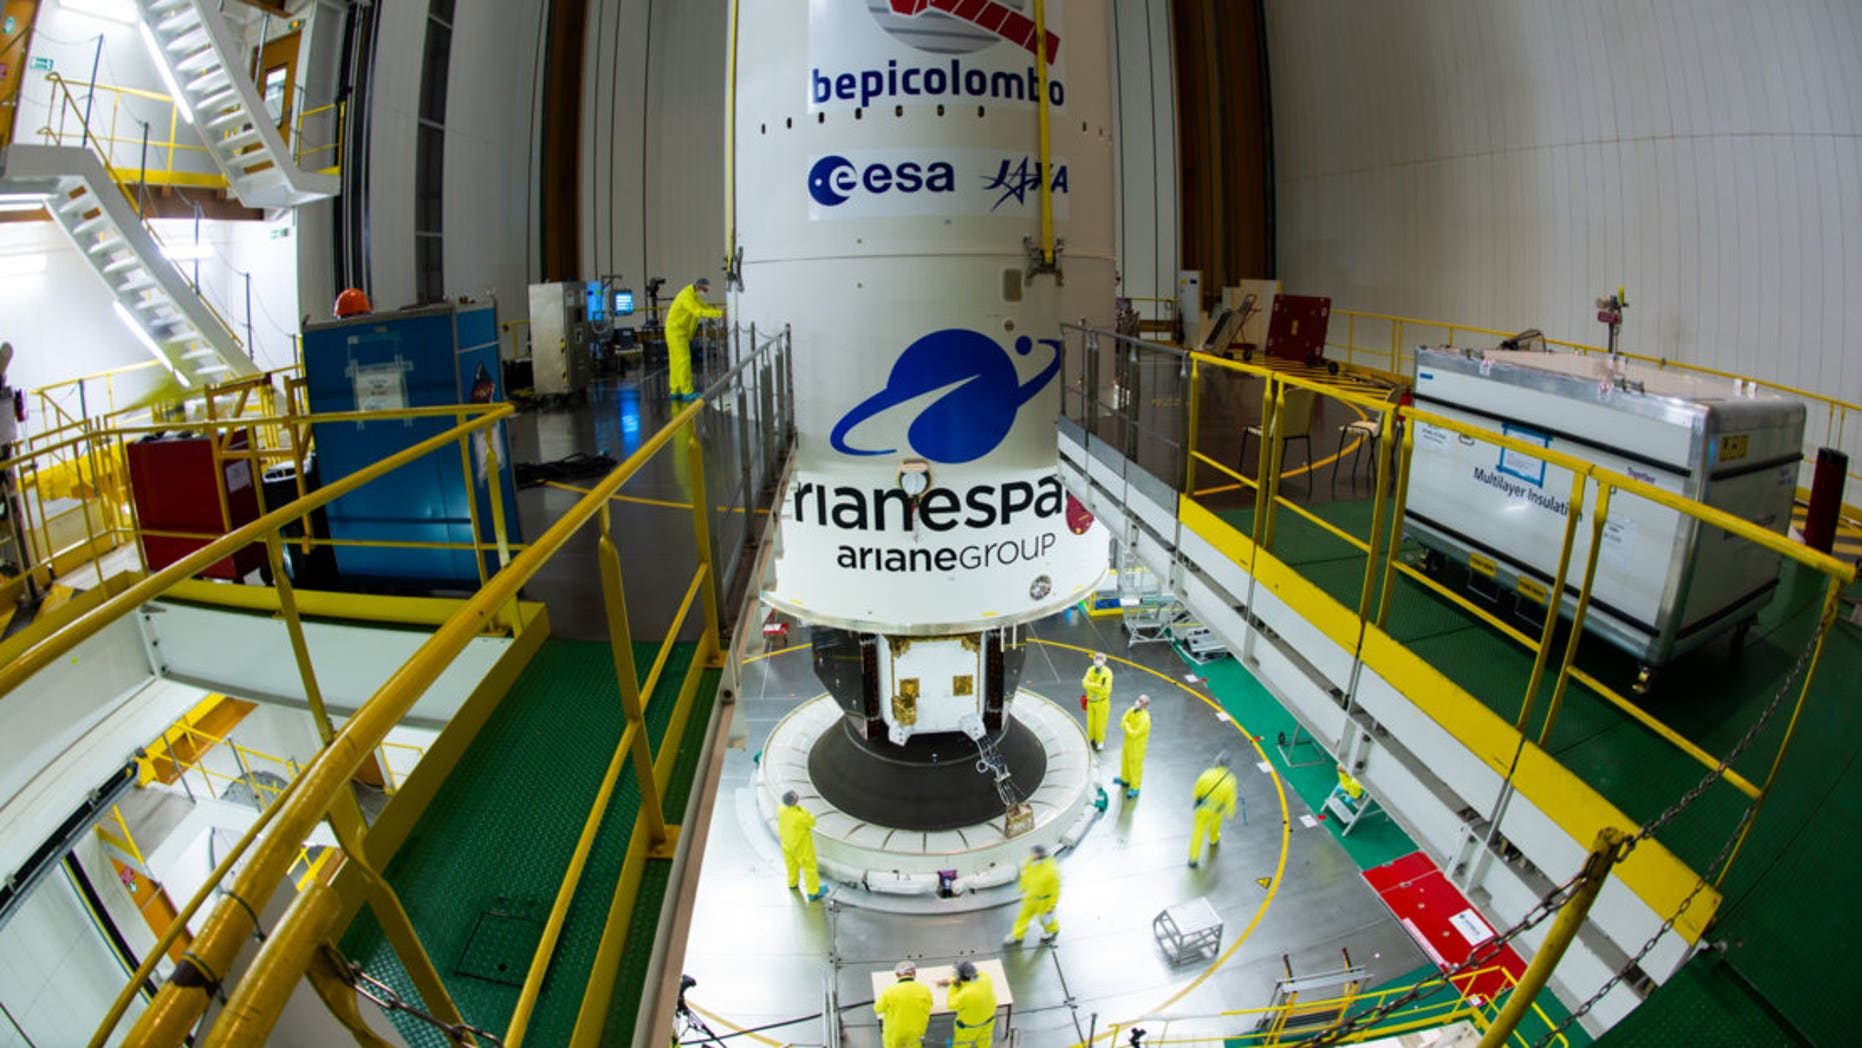 Engineers closed the fairing over BepiColombo in preparation for the mission's launch on Oct. 19 (Oct. 20 GMT).